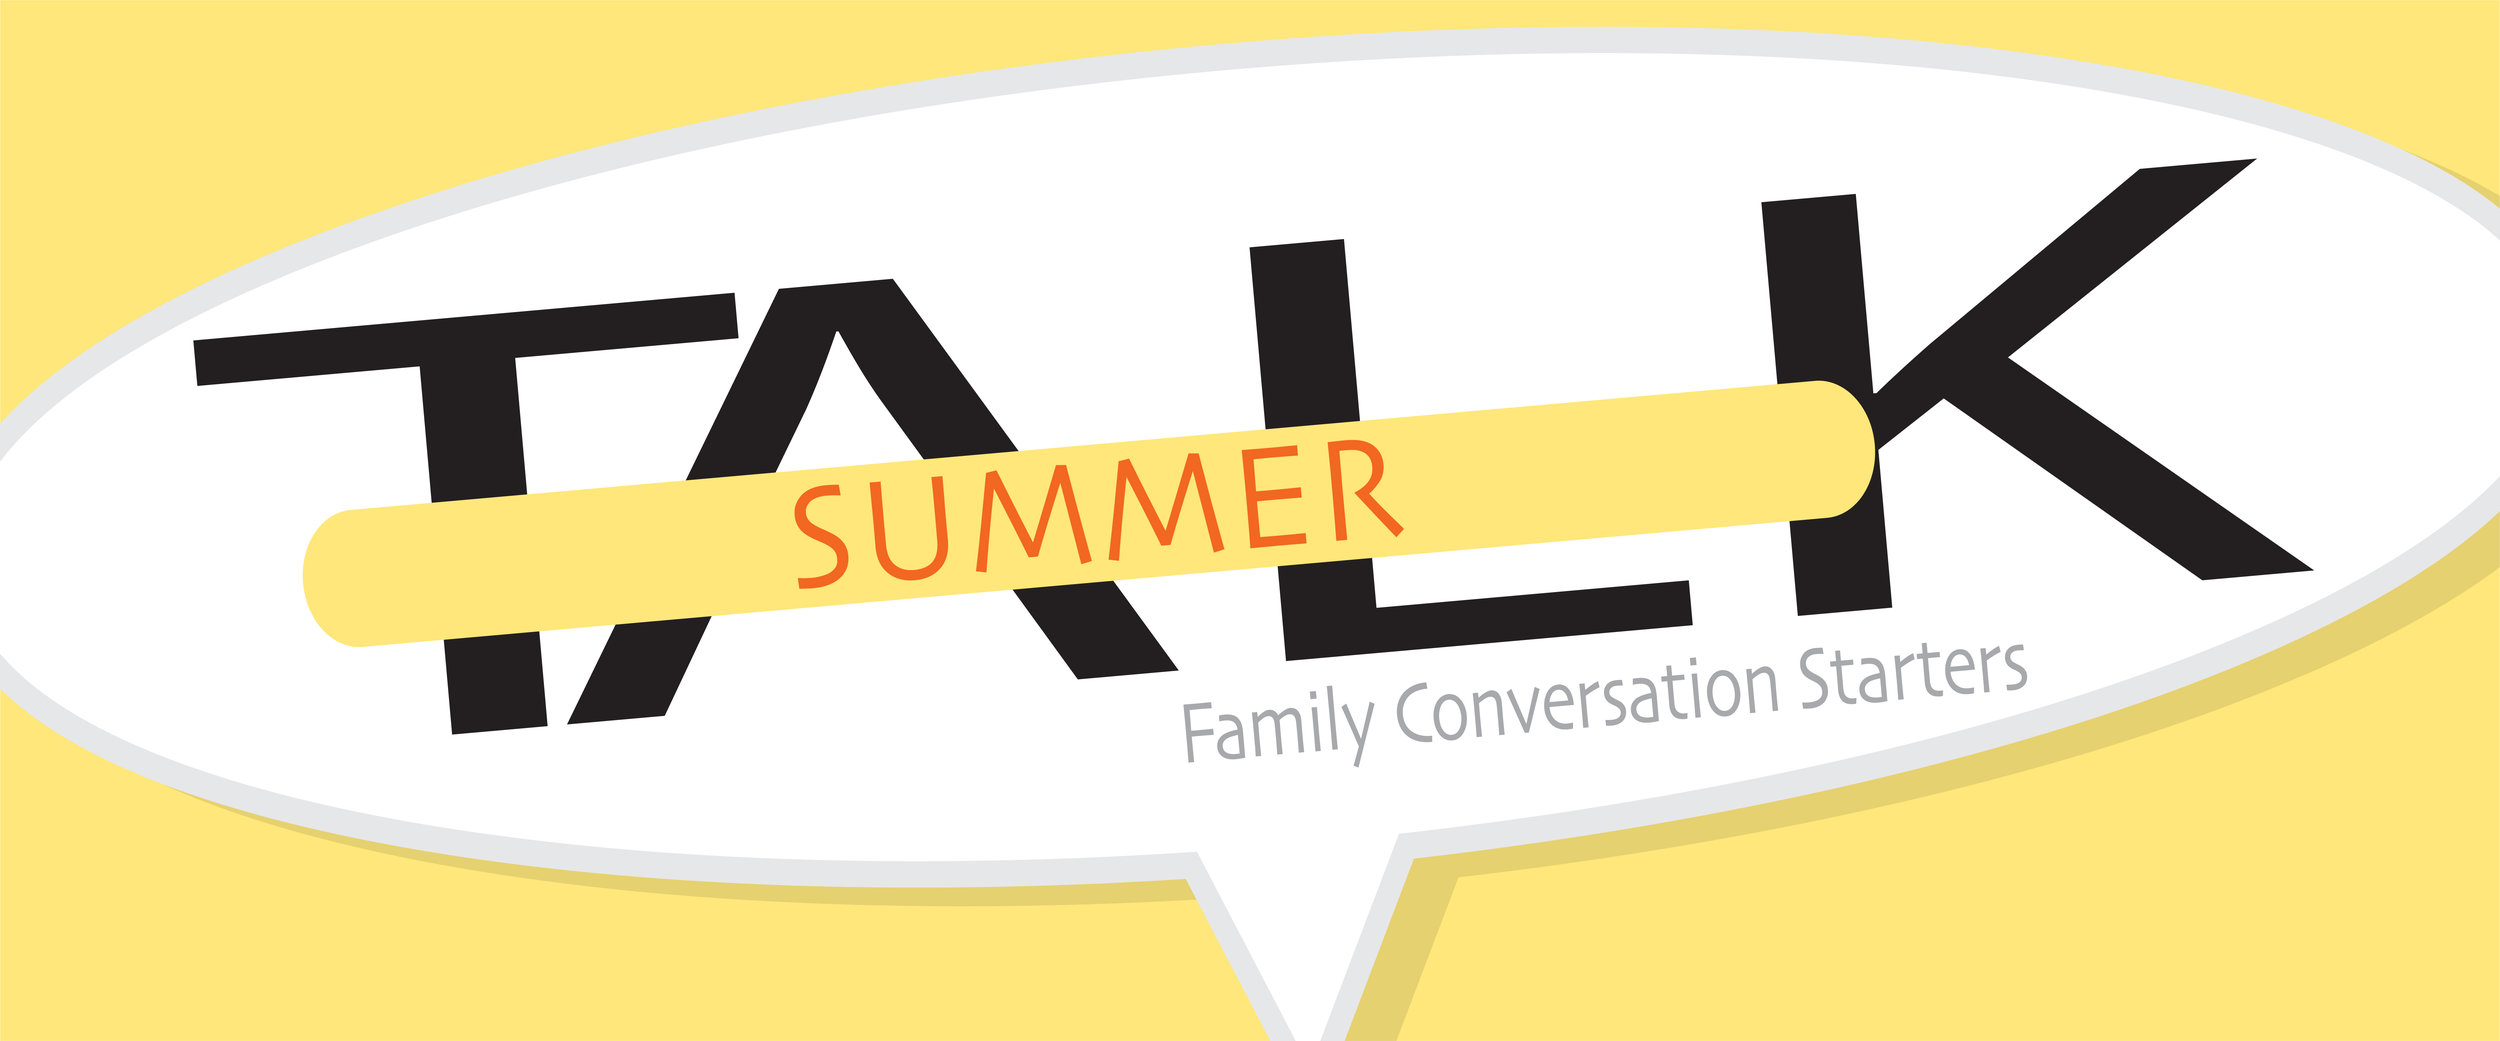 Let's talk! This month's family resource is a page of fun questions to use at the dinner table, in the car or any time you are all together this month. Talk, laugh and just enjoy the summer time together.